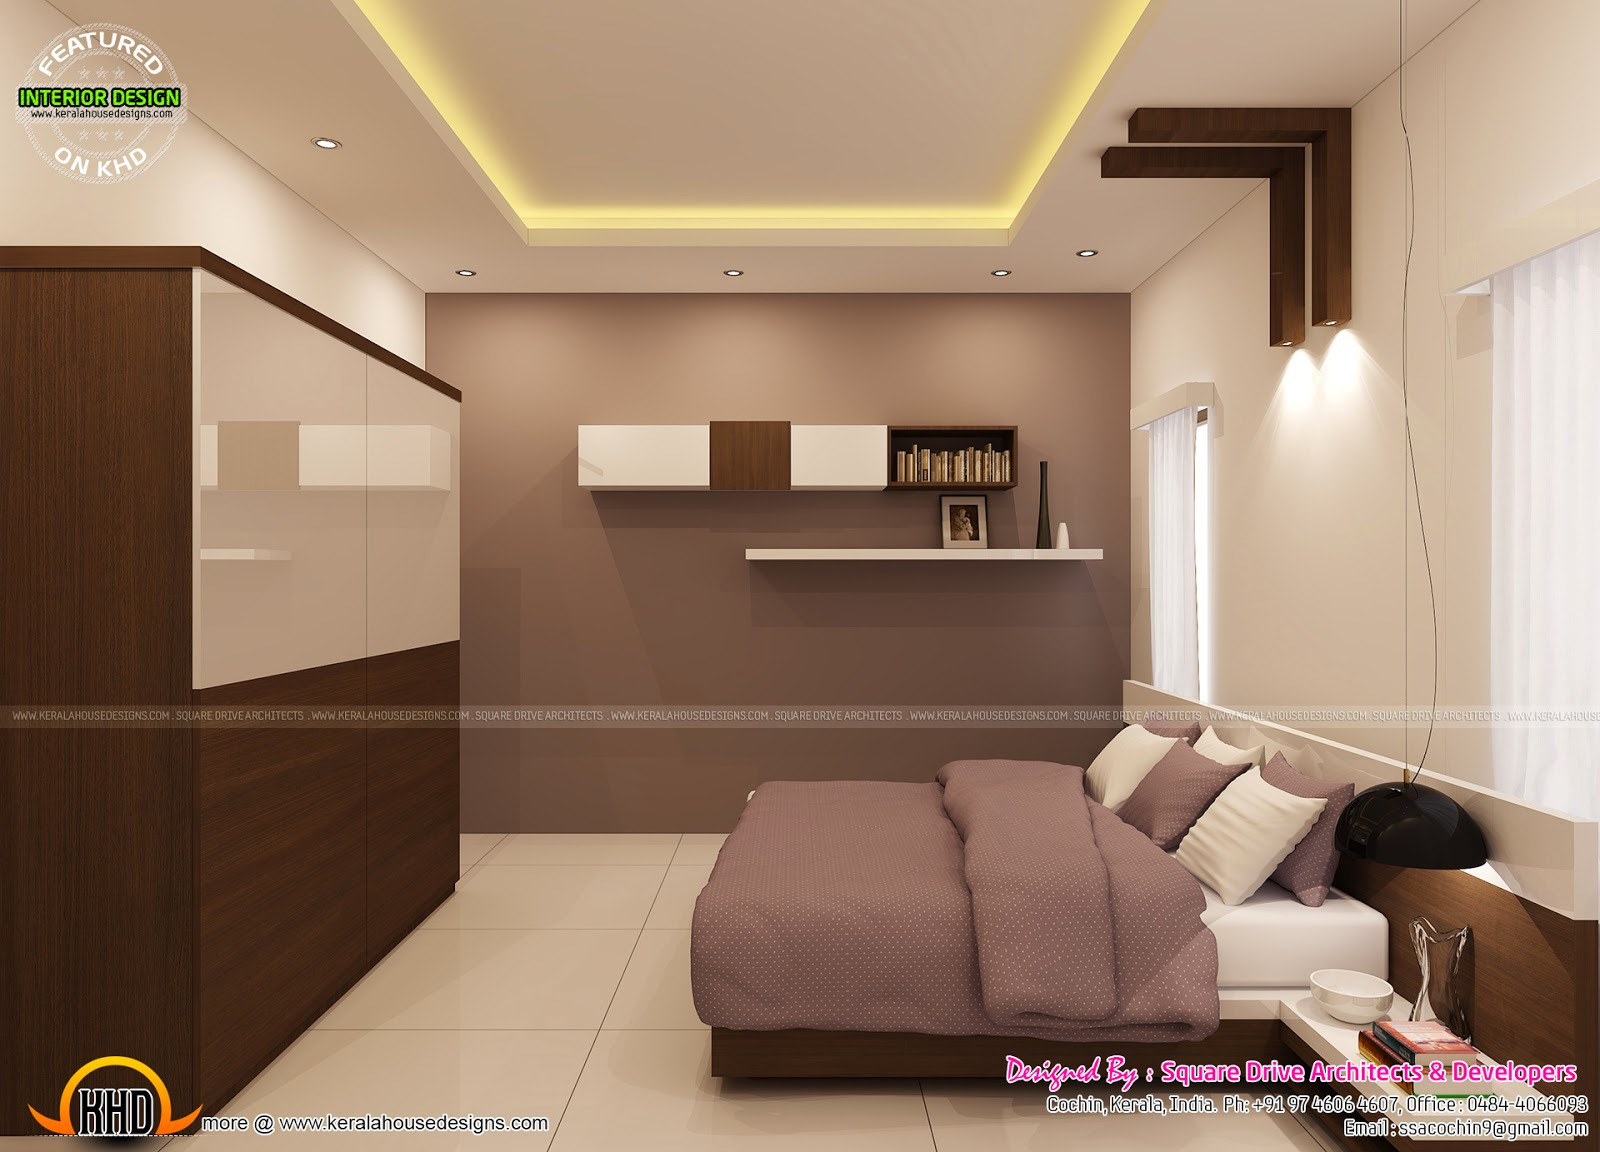 Bedroom interior decoration kerala home design and floor plans - Interior bedroom design ...